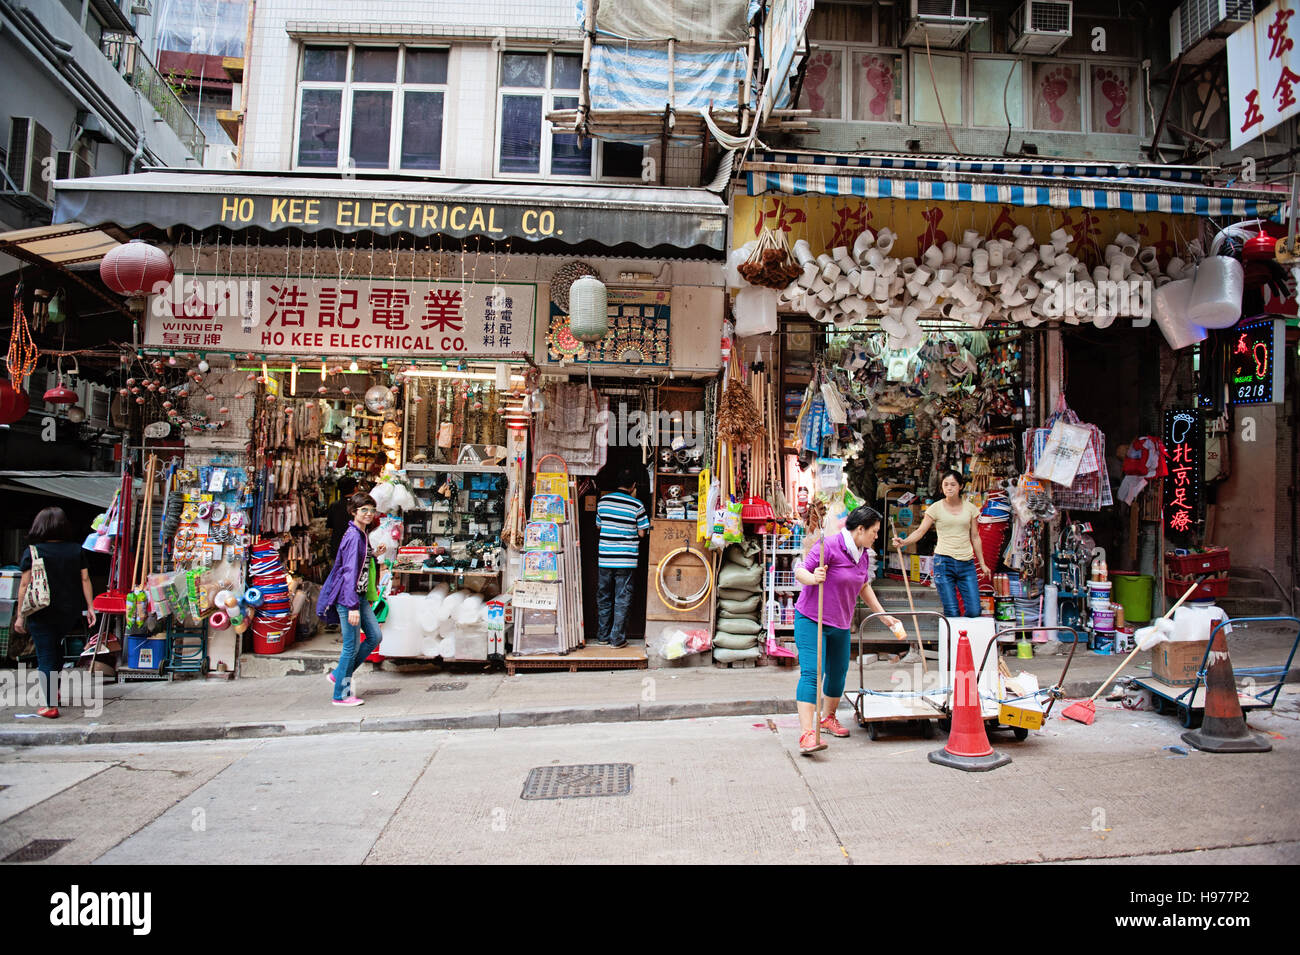 Hong Kong street scene, Wellington Road, with stores and construction - Stock Image